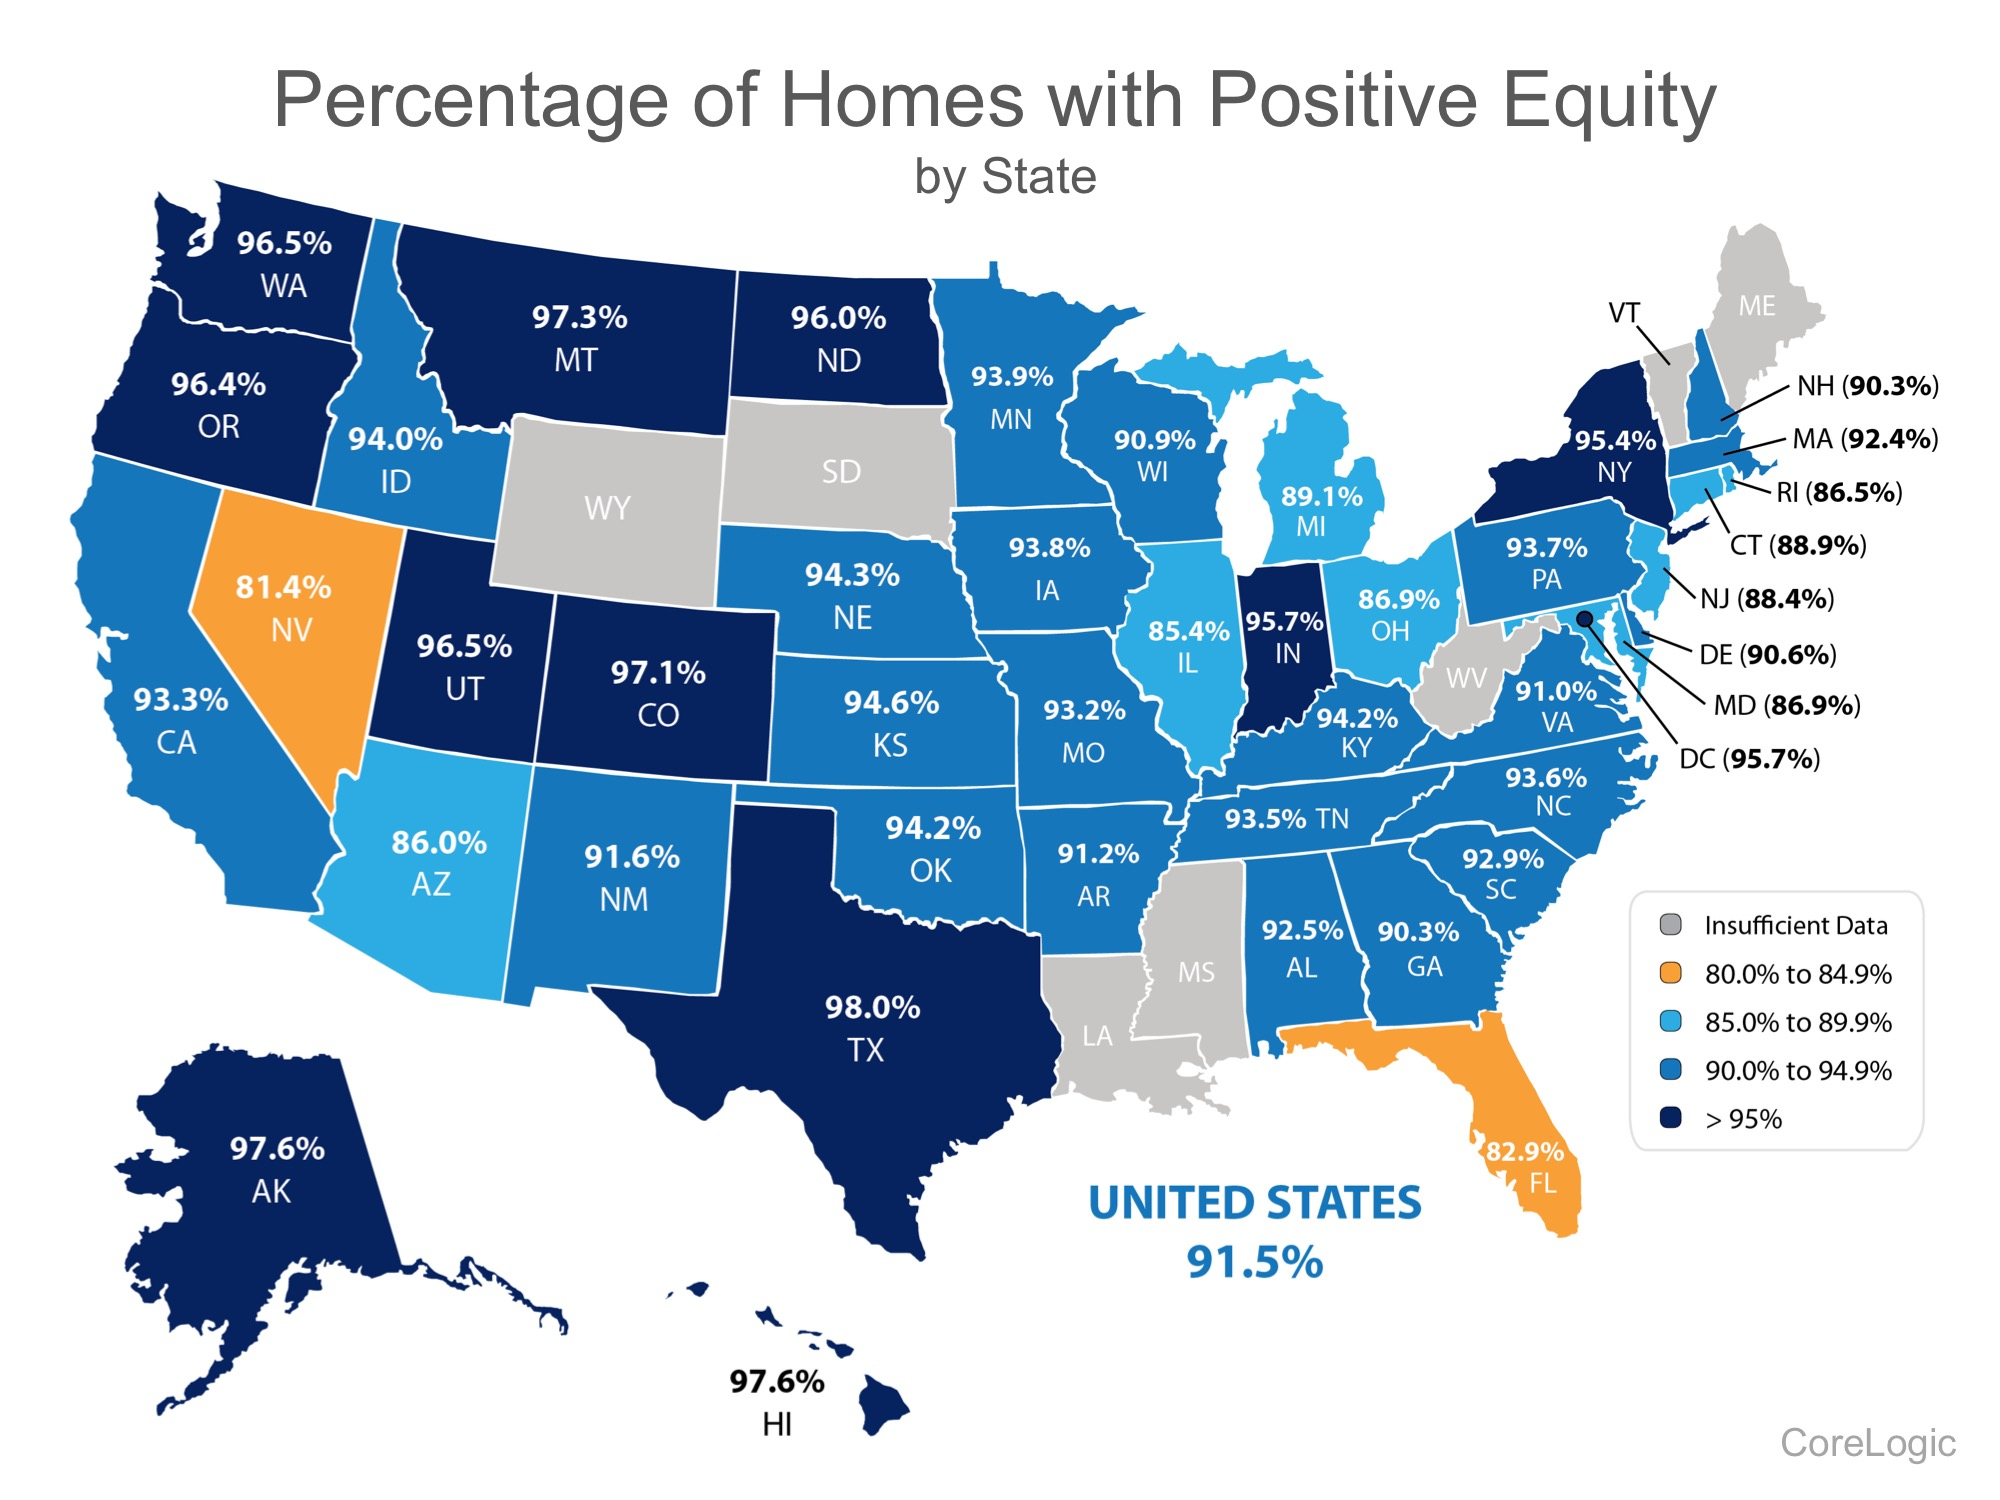 91.5% of Homes in the US have Positive Equity | Simplifying The Market